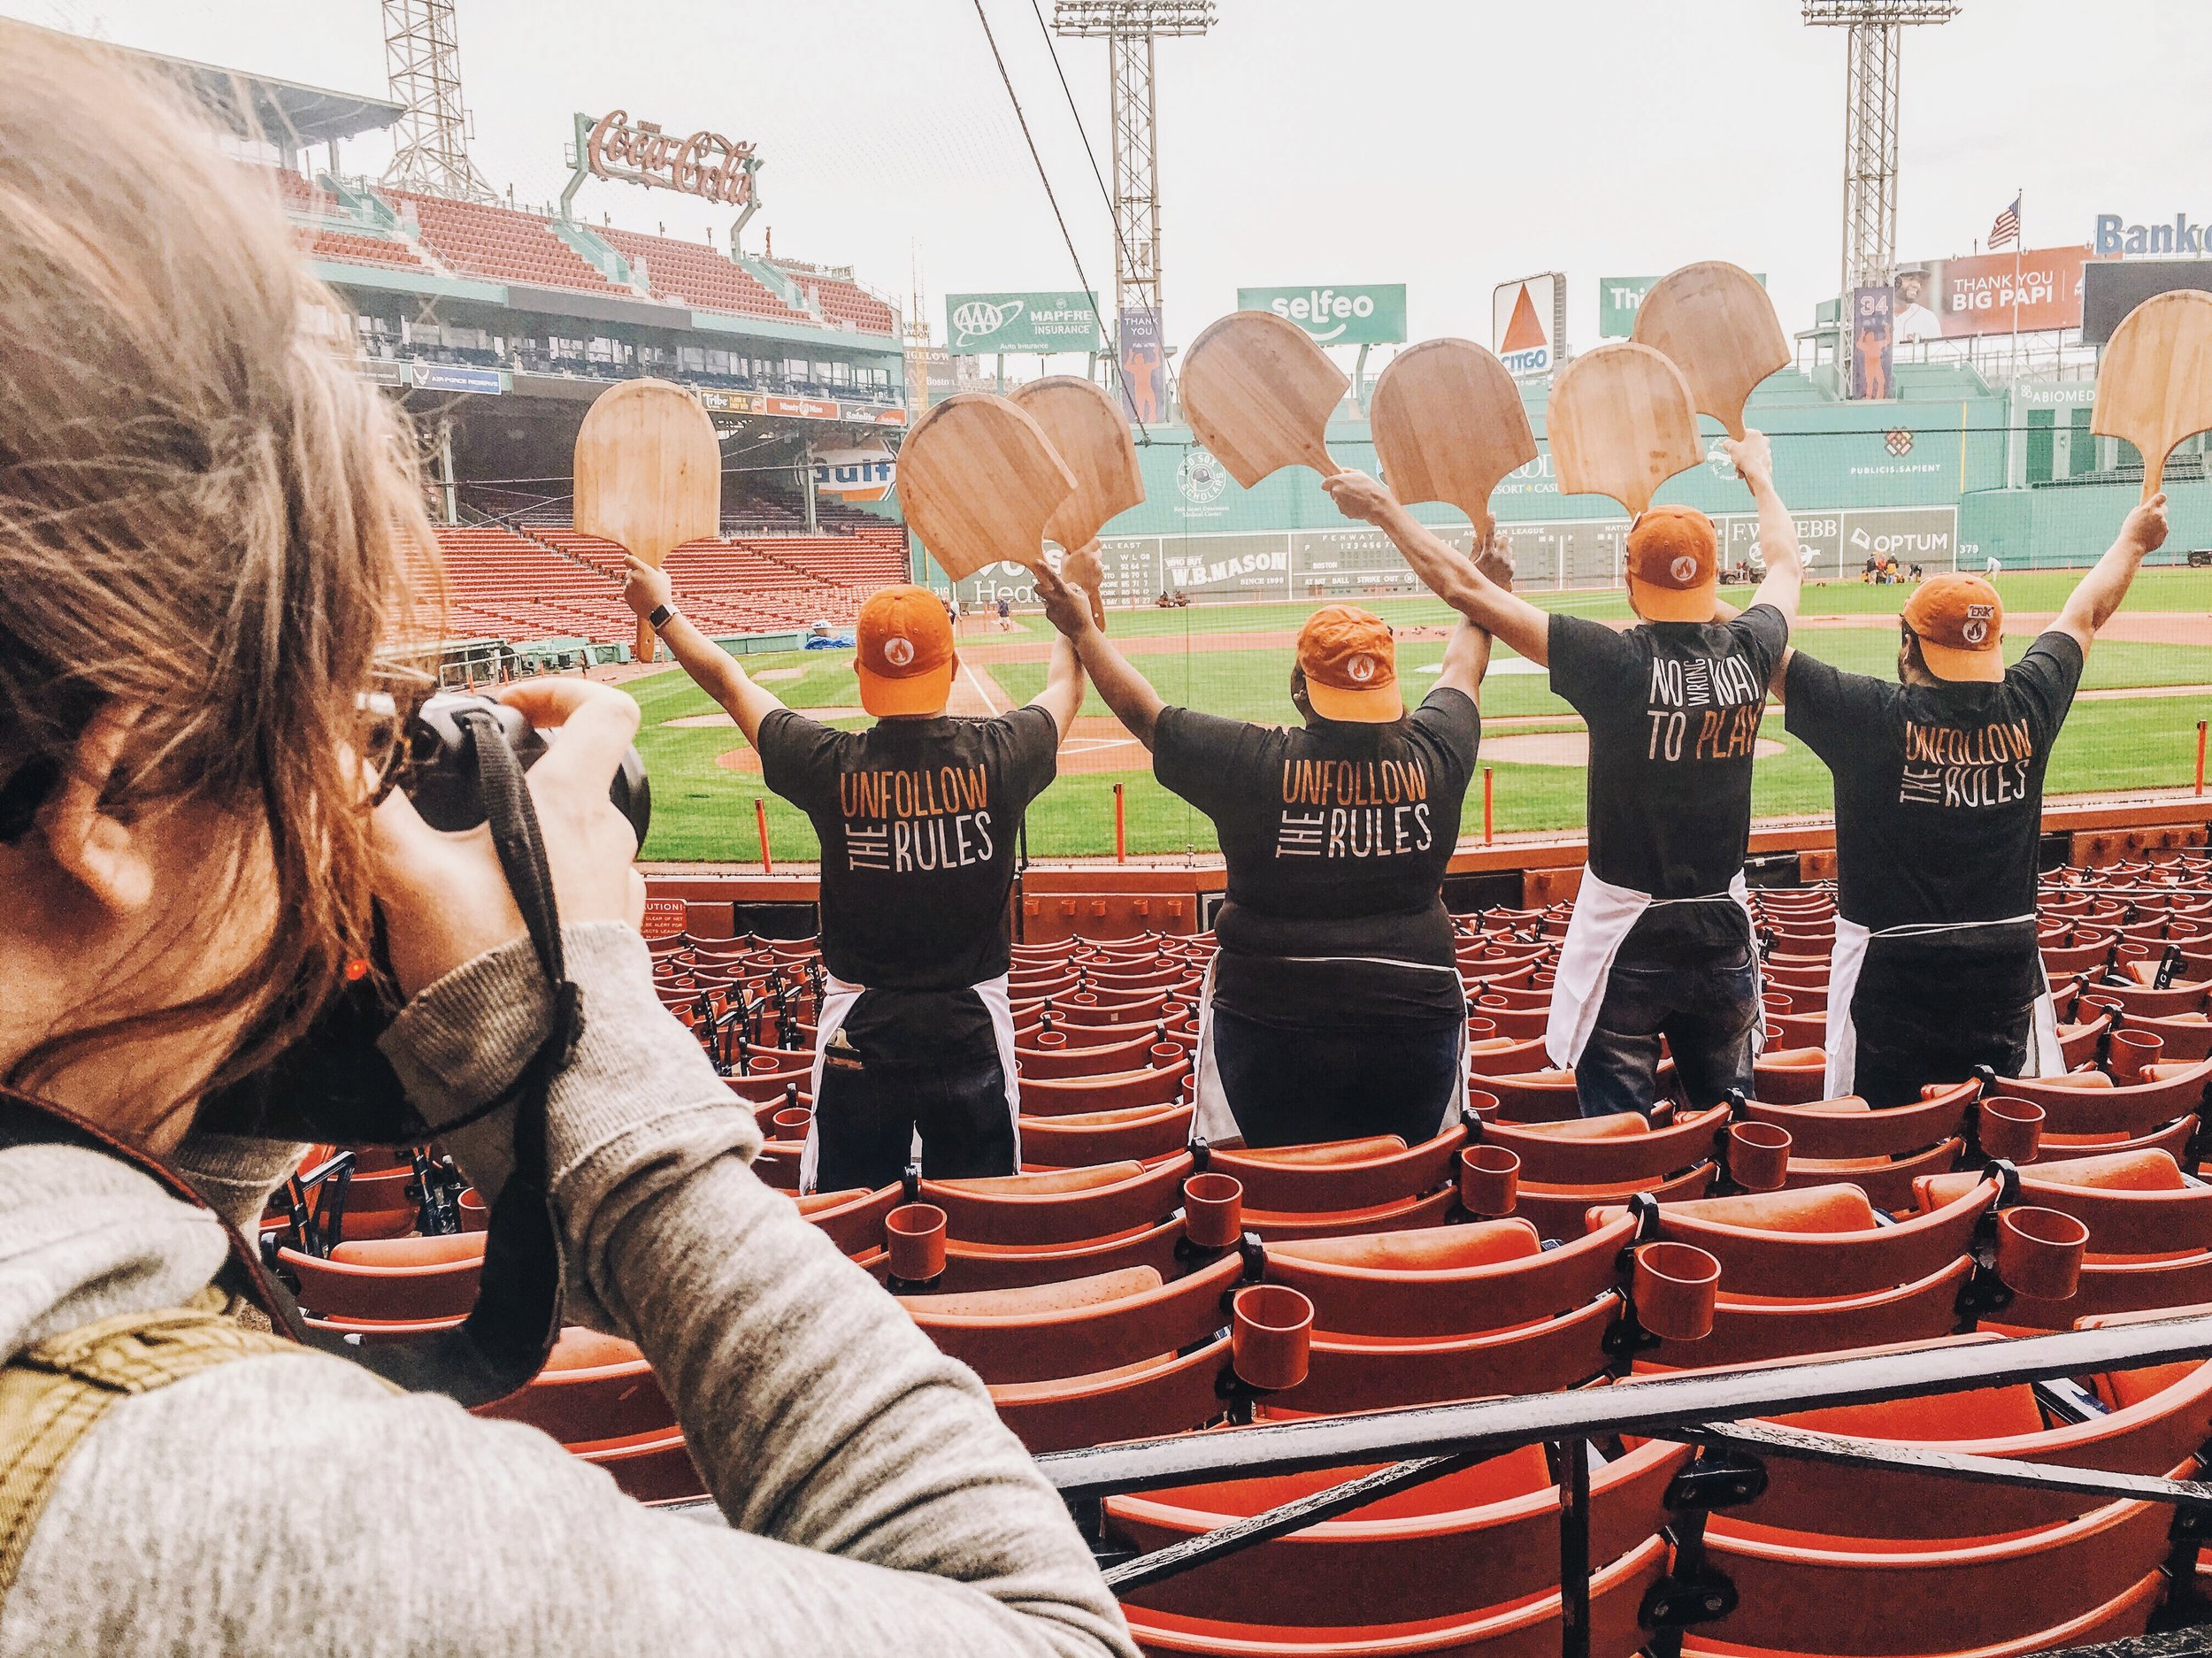 Shooting at Fenway Park for the opening of Blaze Pizza